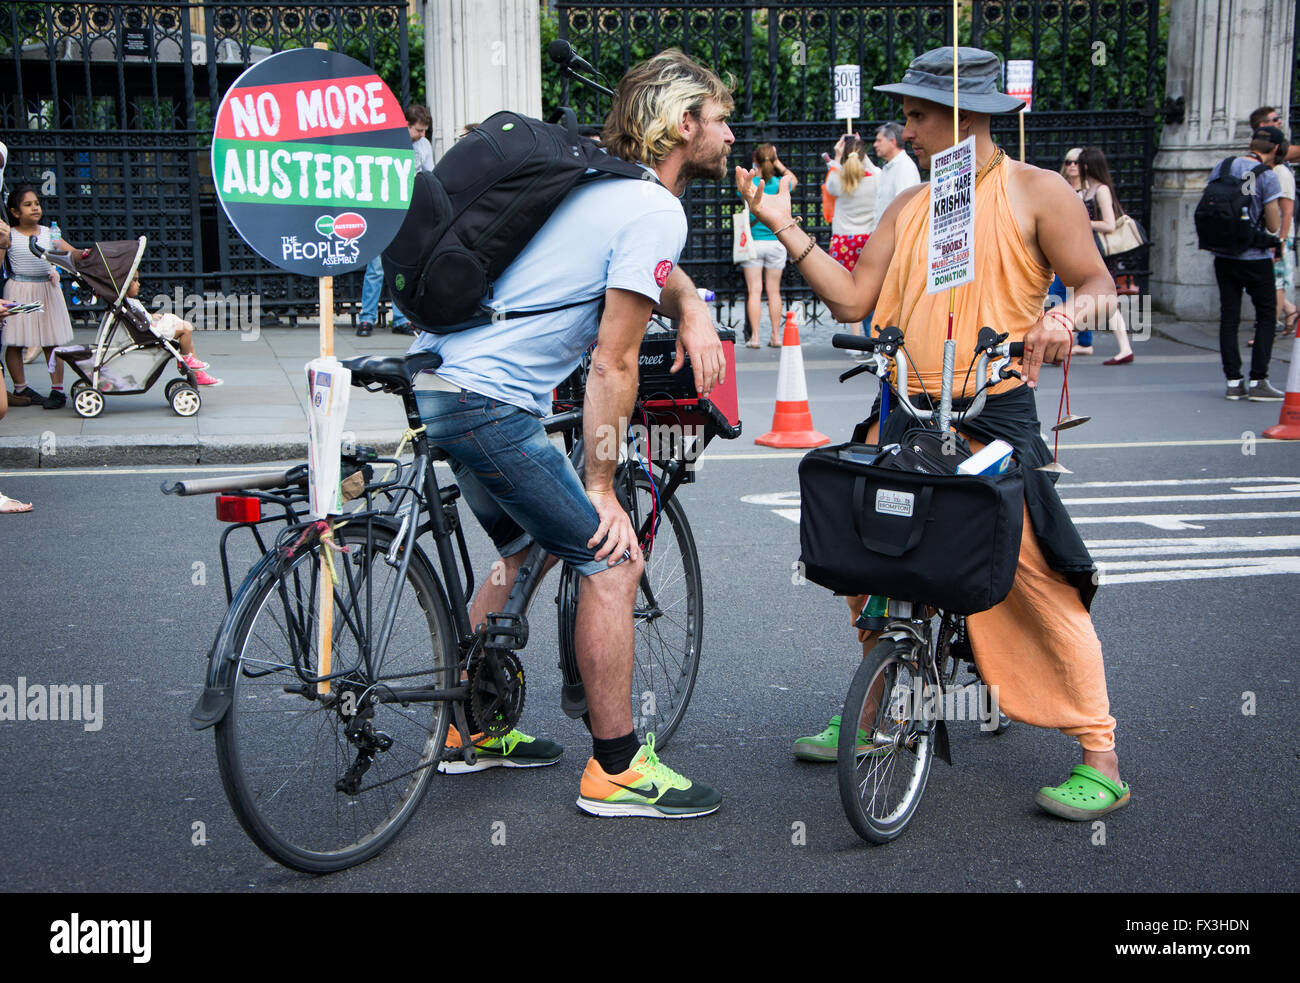 Street discussion at 'No More Austerity' protest march, London, June 21, 2014 - Stock Image